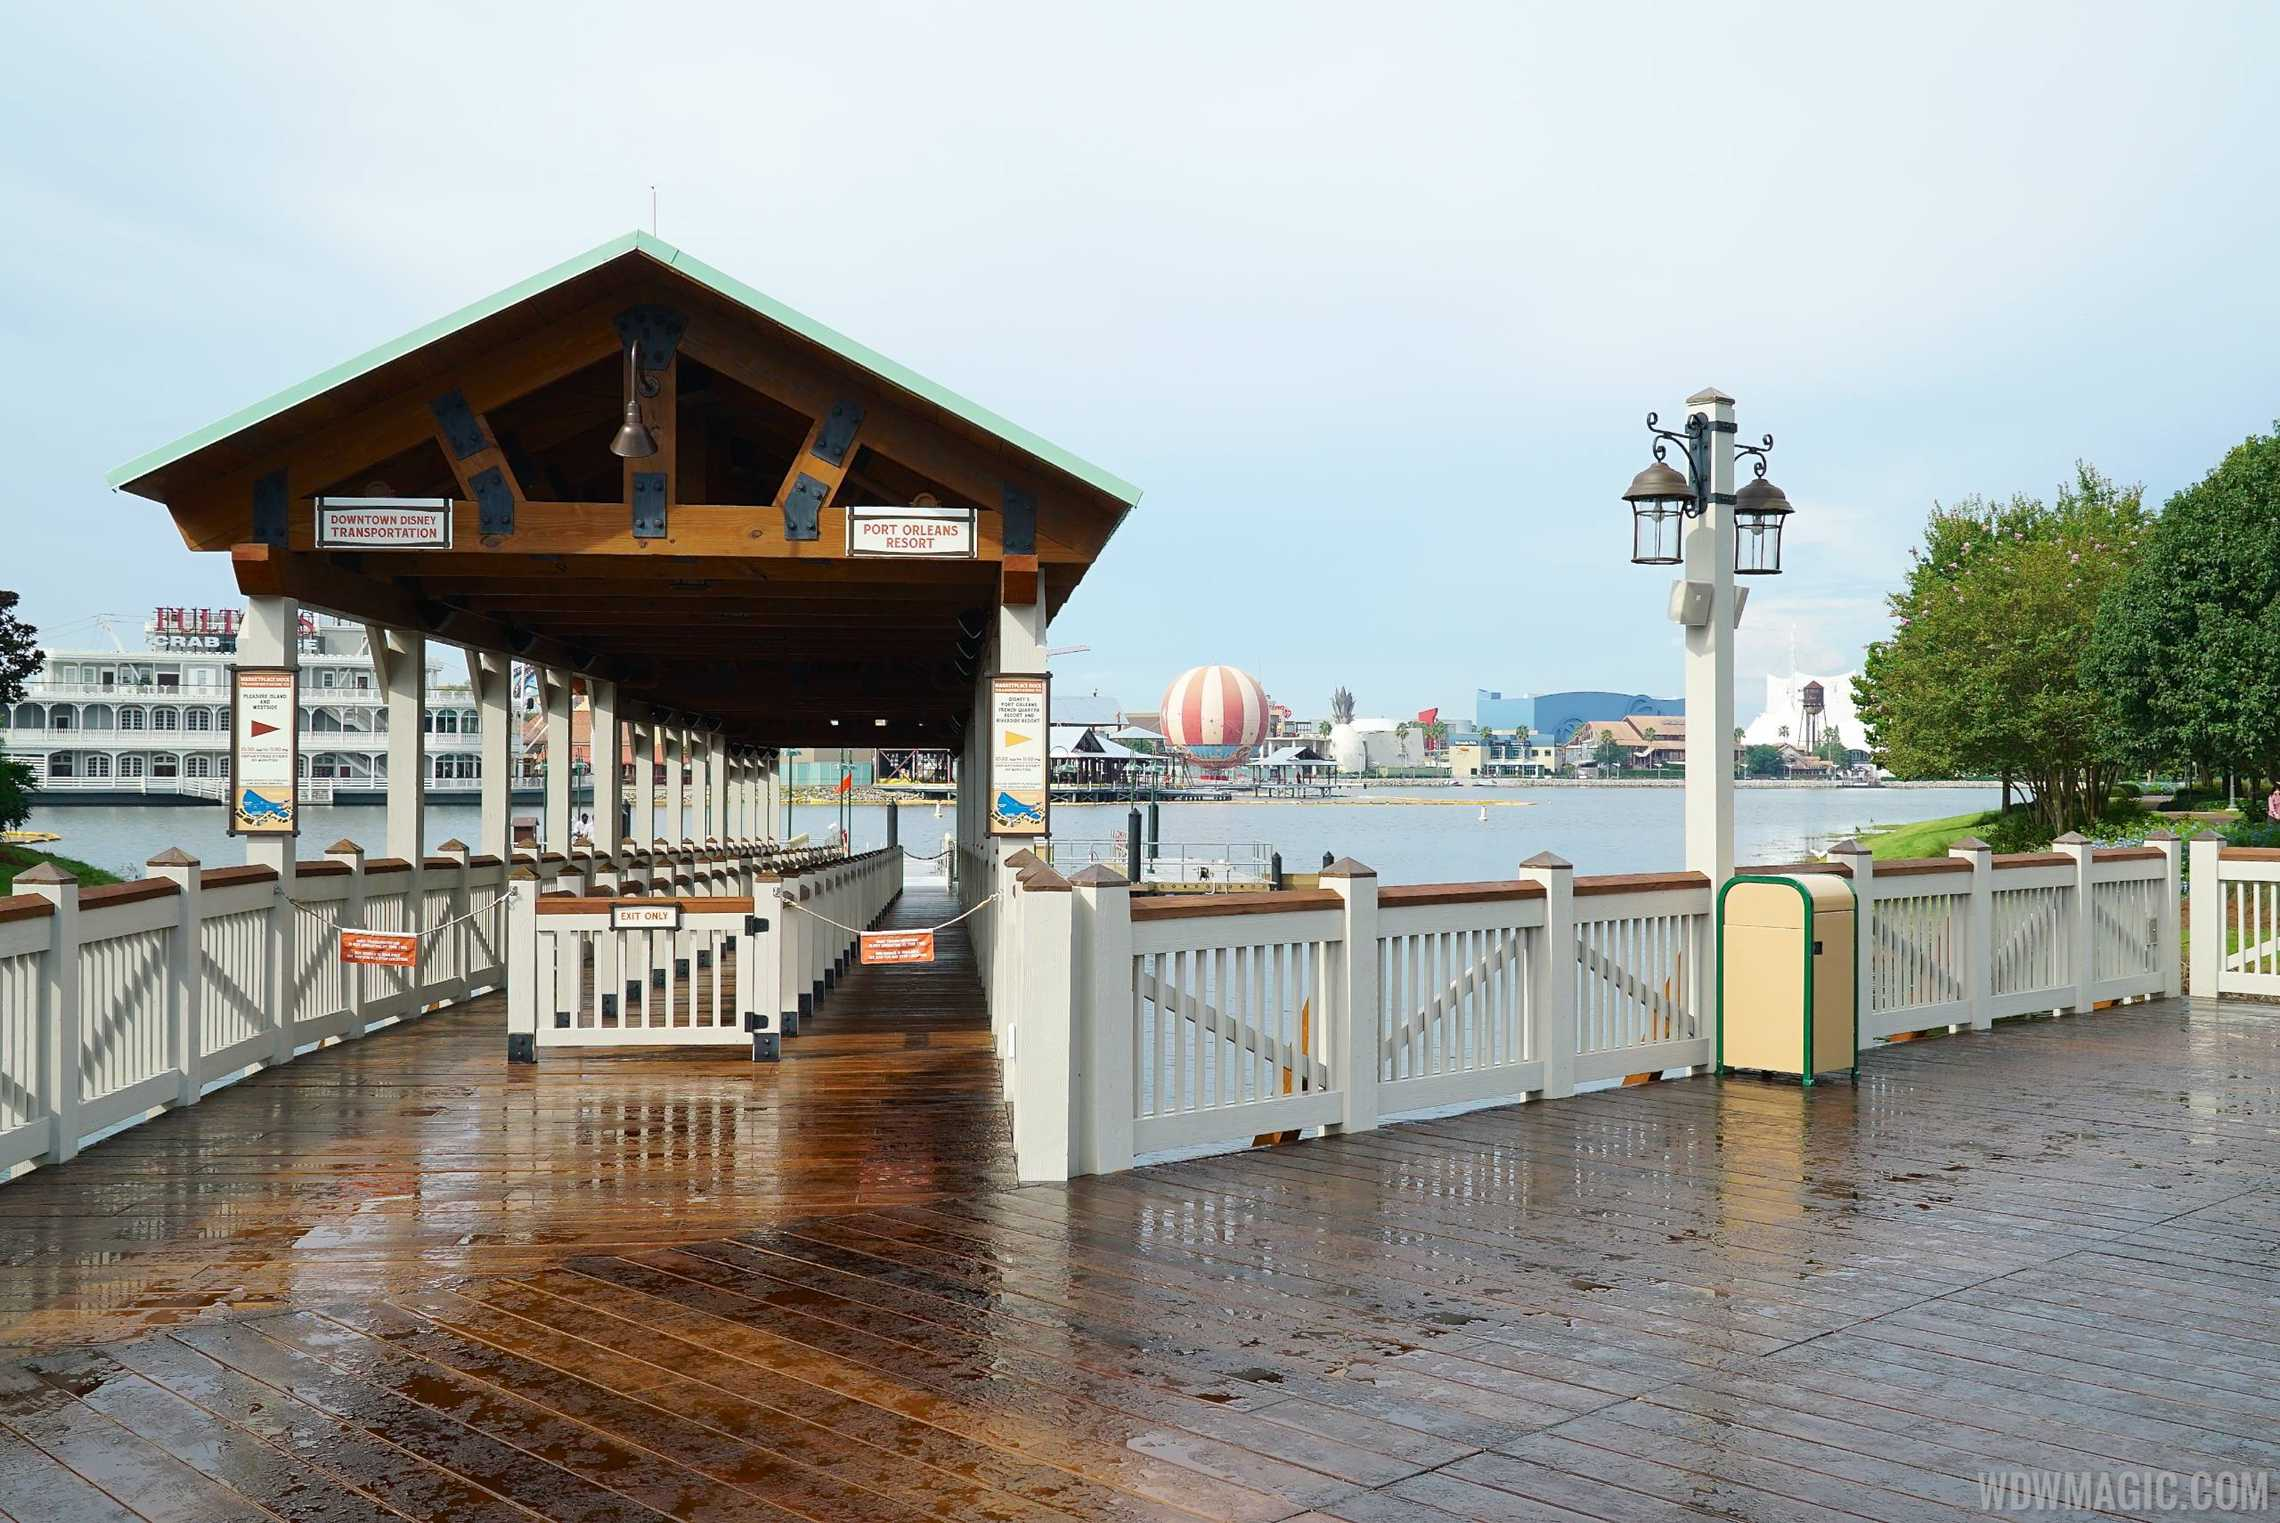 The Marketplace boat dock